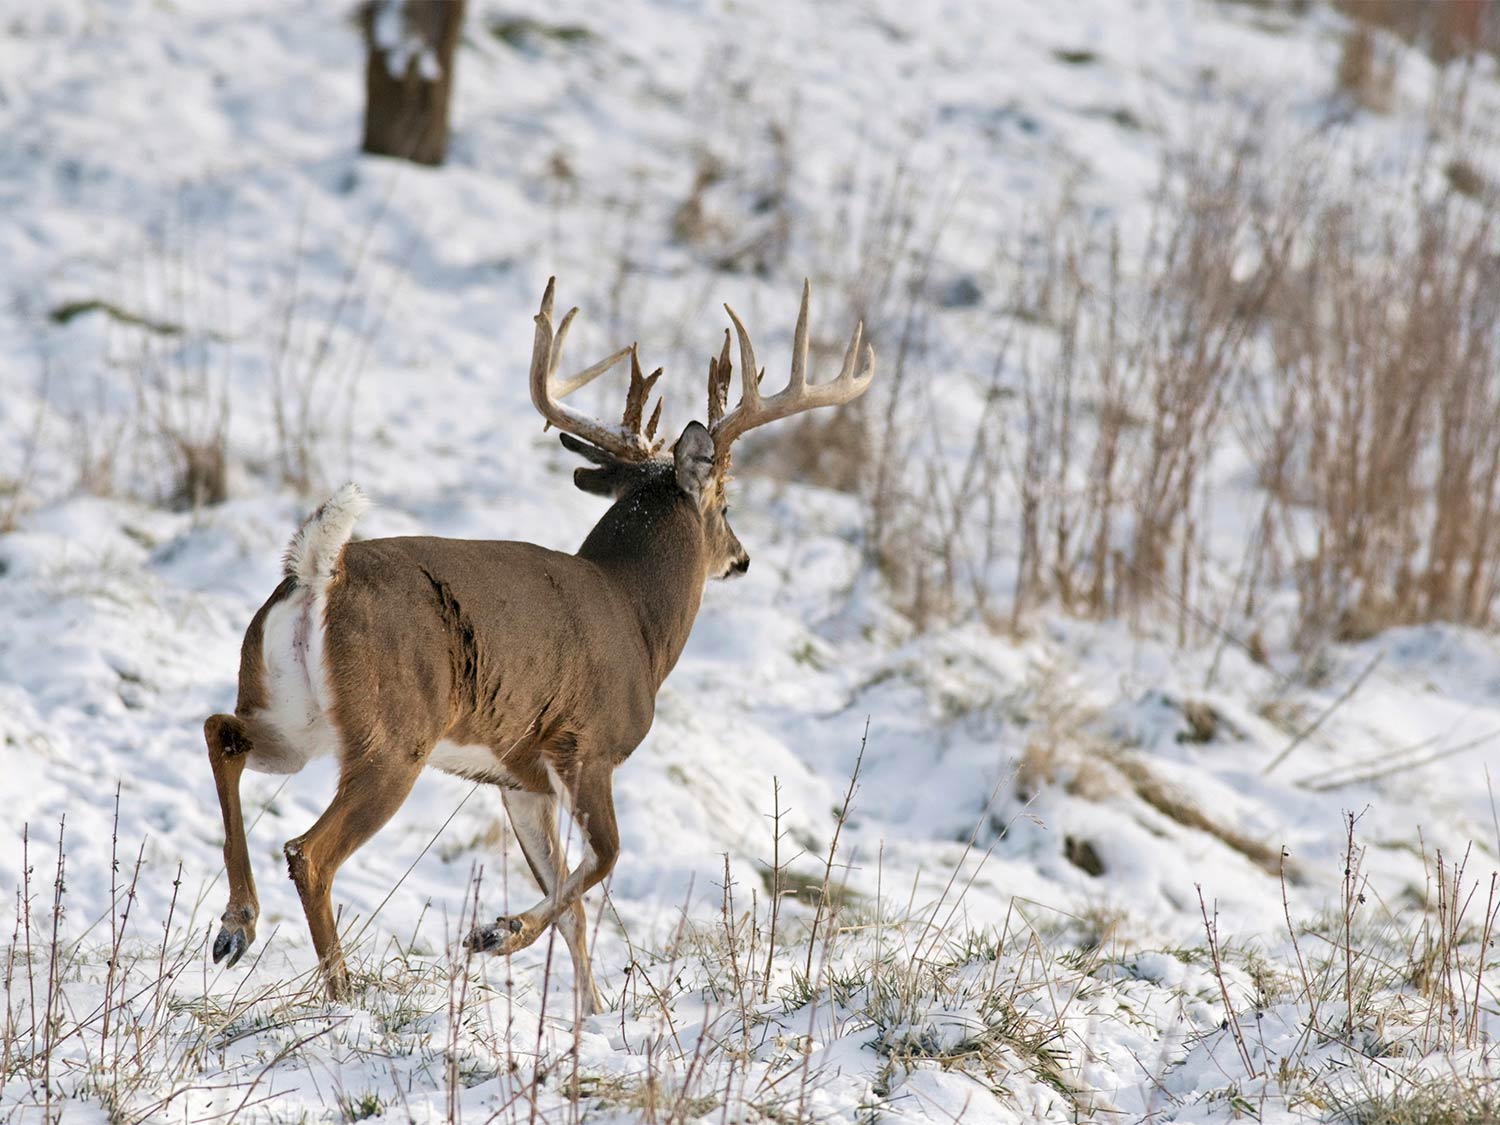 A large whitetail buck running through a snow-covered field.